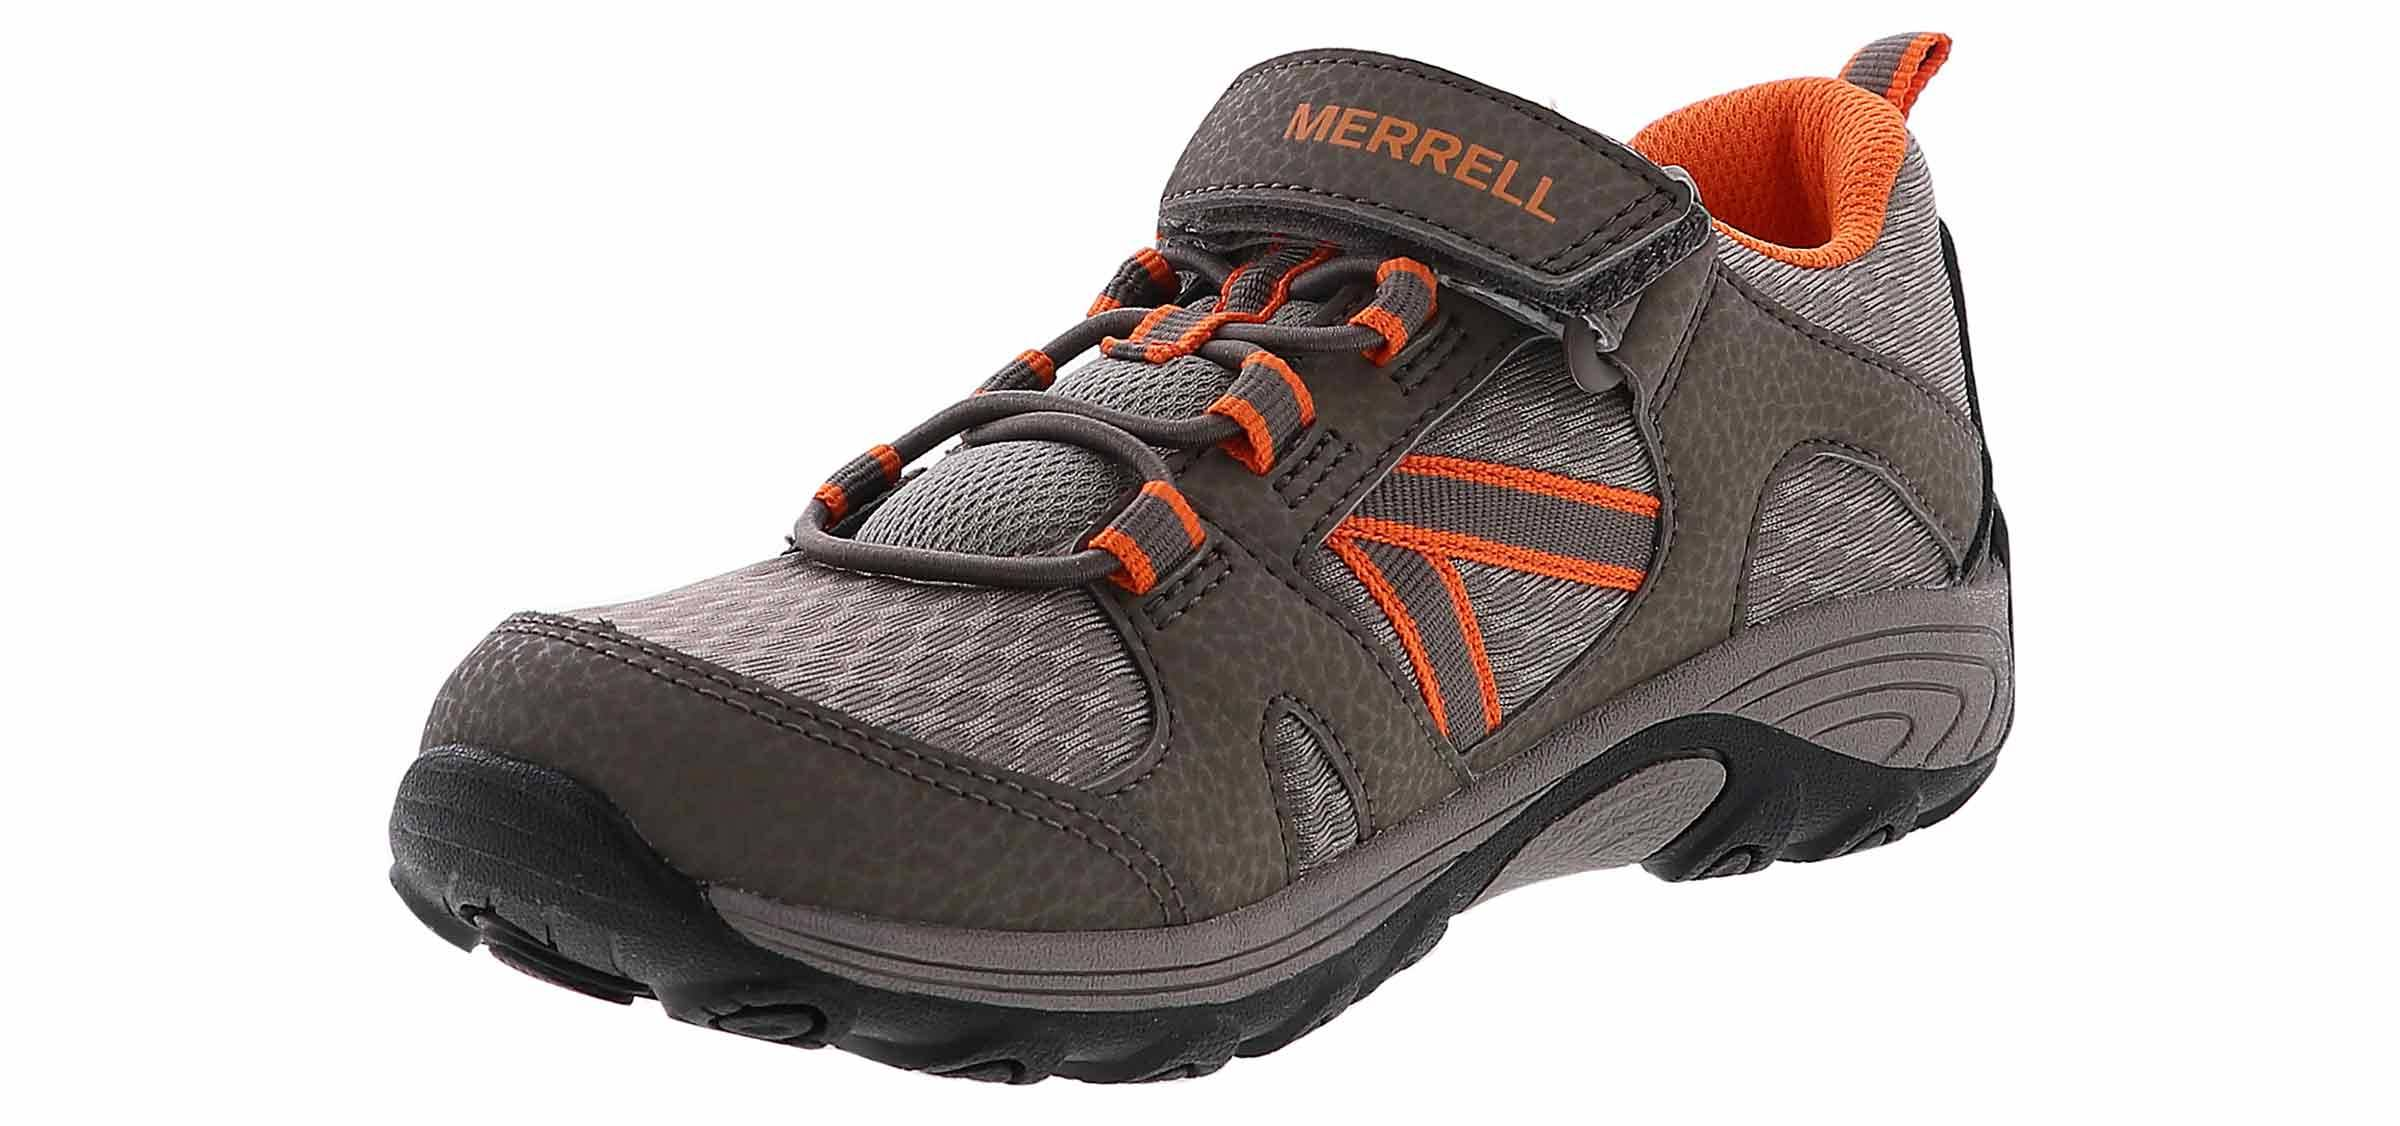 Merrell Outback Low Kids' Outdoor Shoe